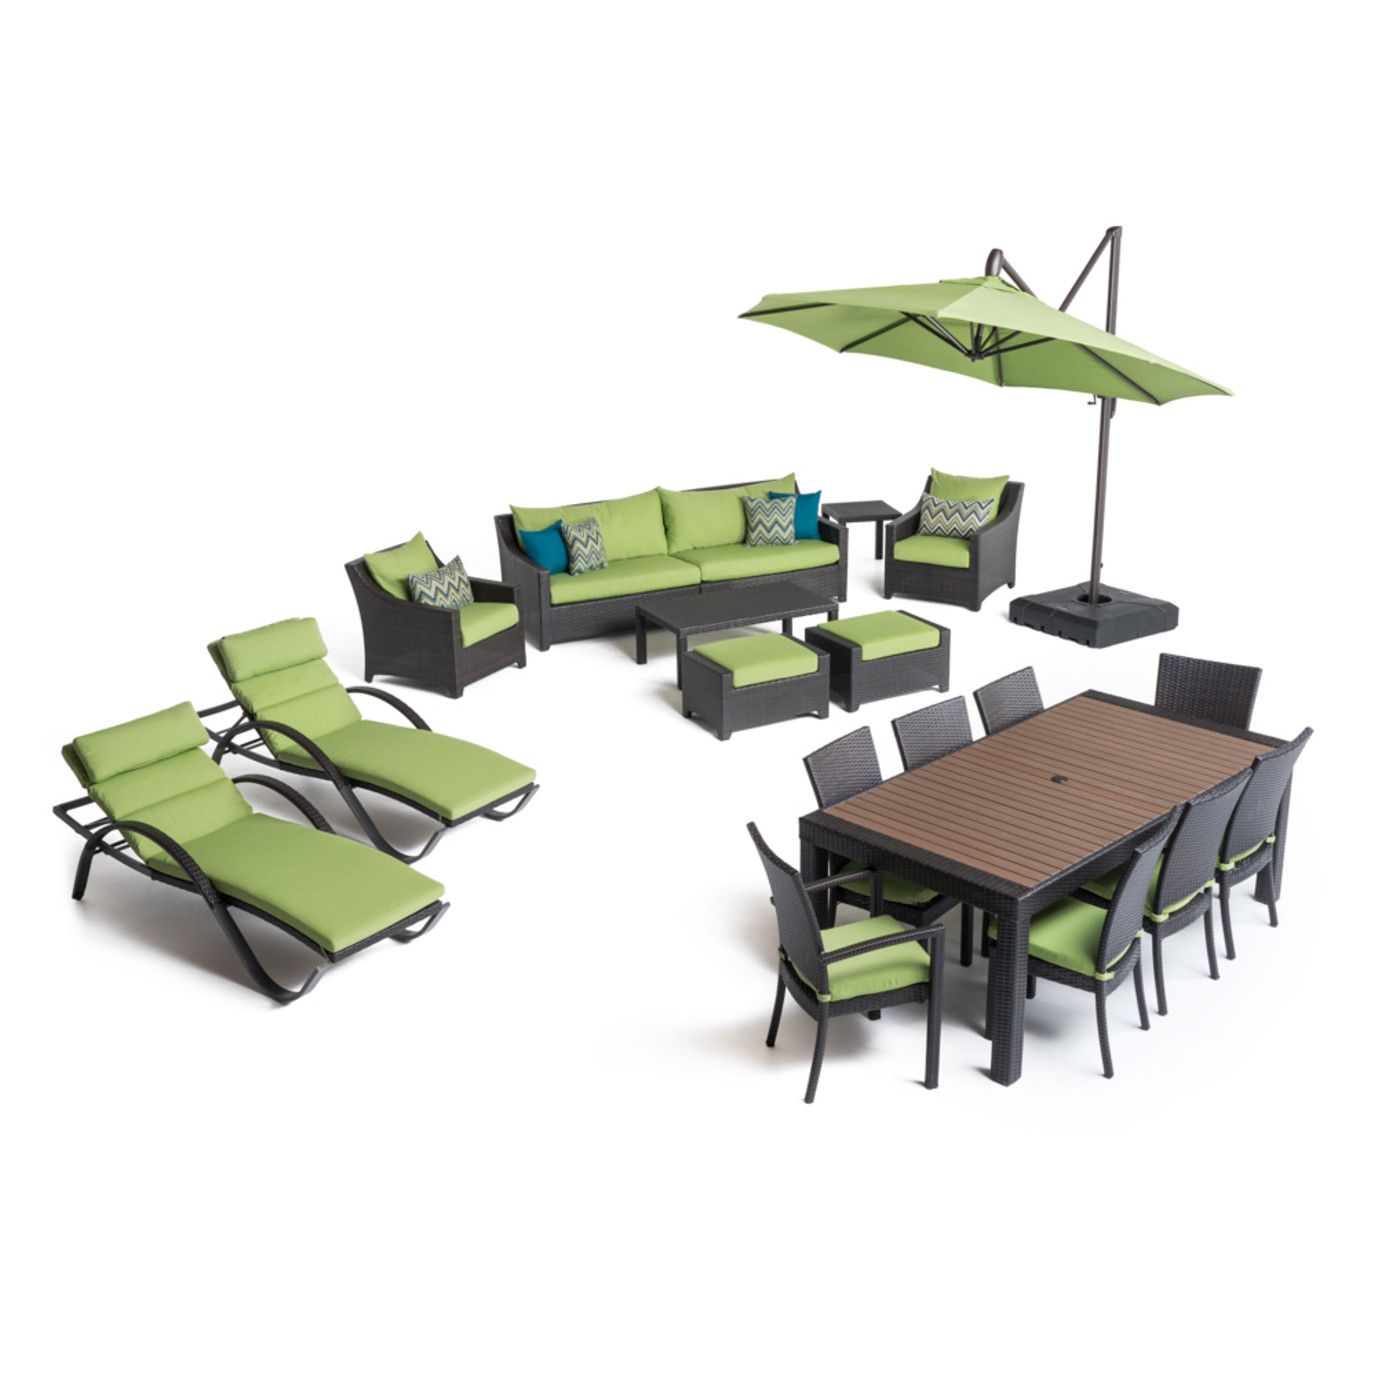 Deco™ 20 Piece Outdoor Estate Set - Ginkgo Green